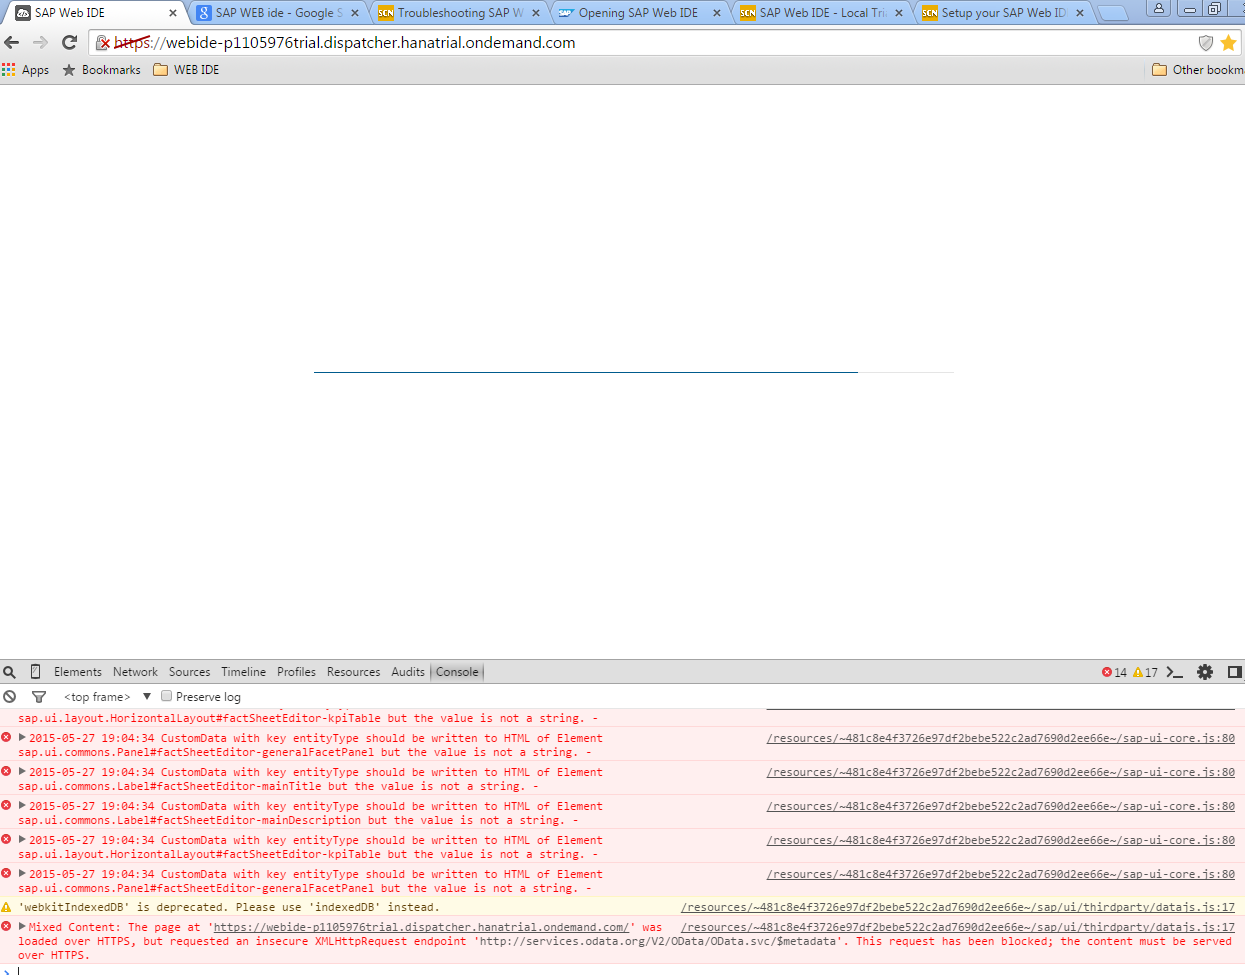 THE REQUEST FAILED WITH HTTP STATUS 502 HOST NOT FOUND